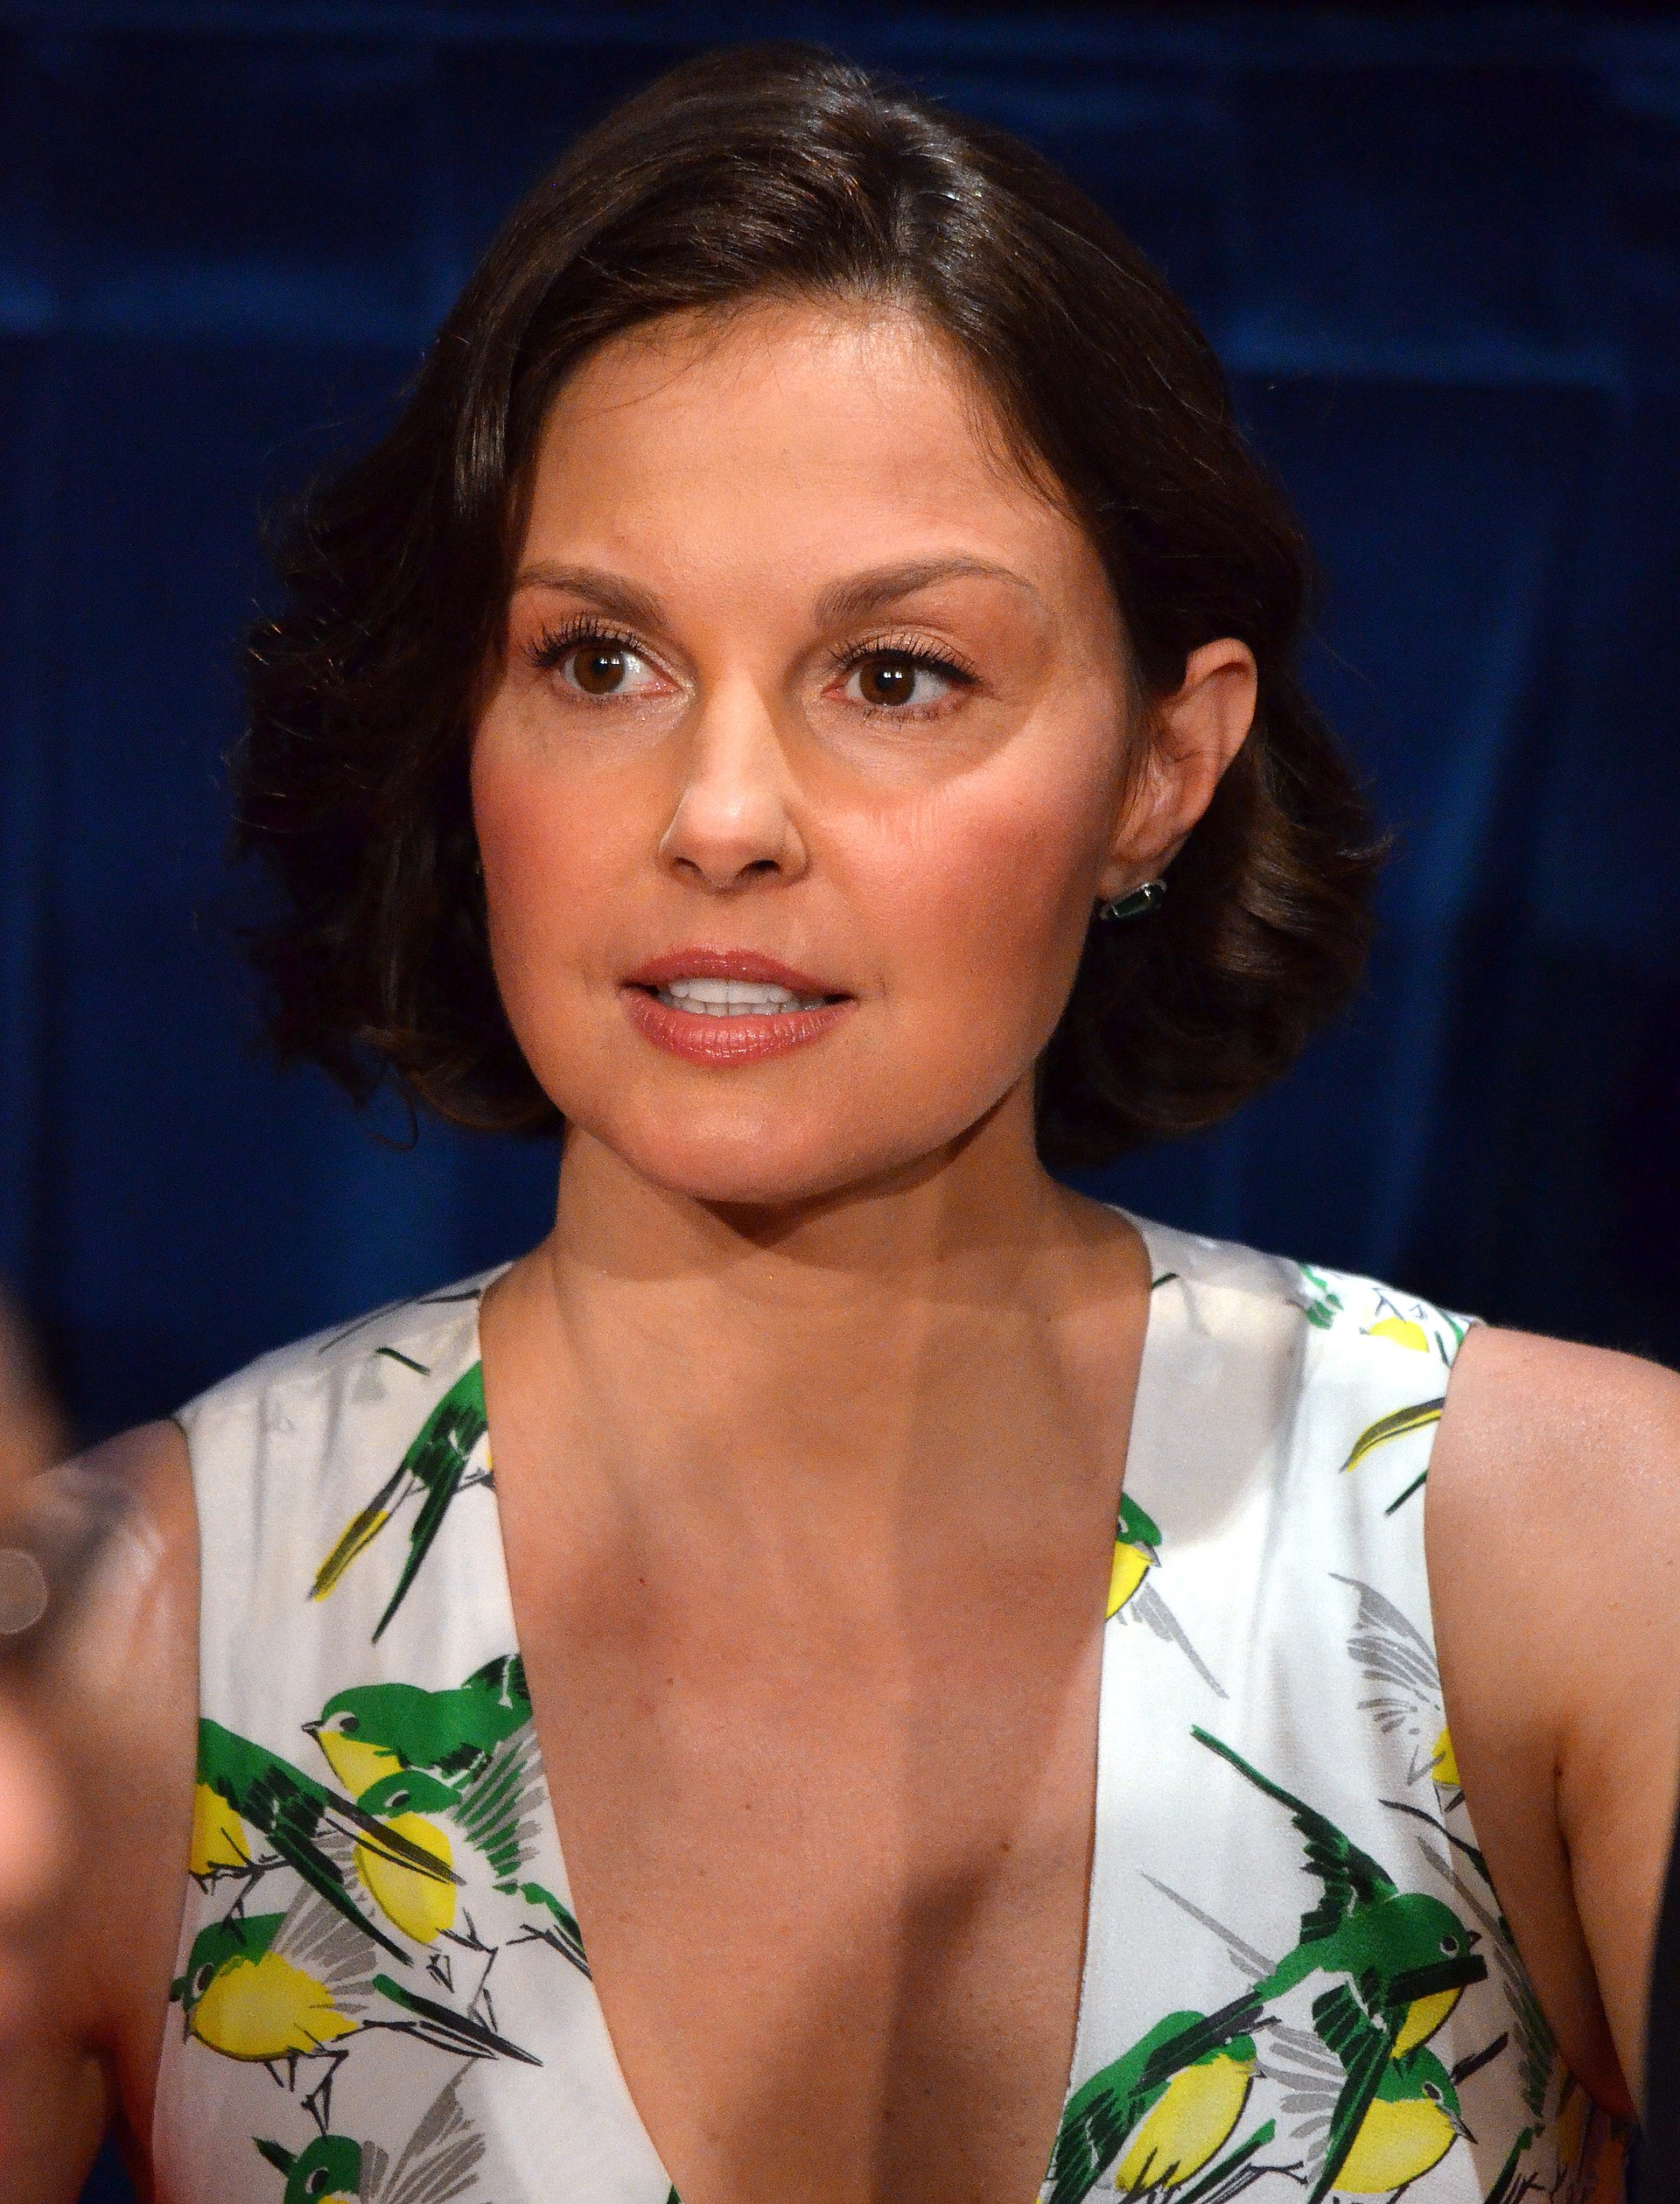 Ashley Judd – Wikipedia